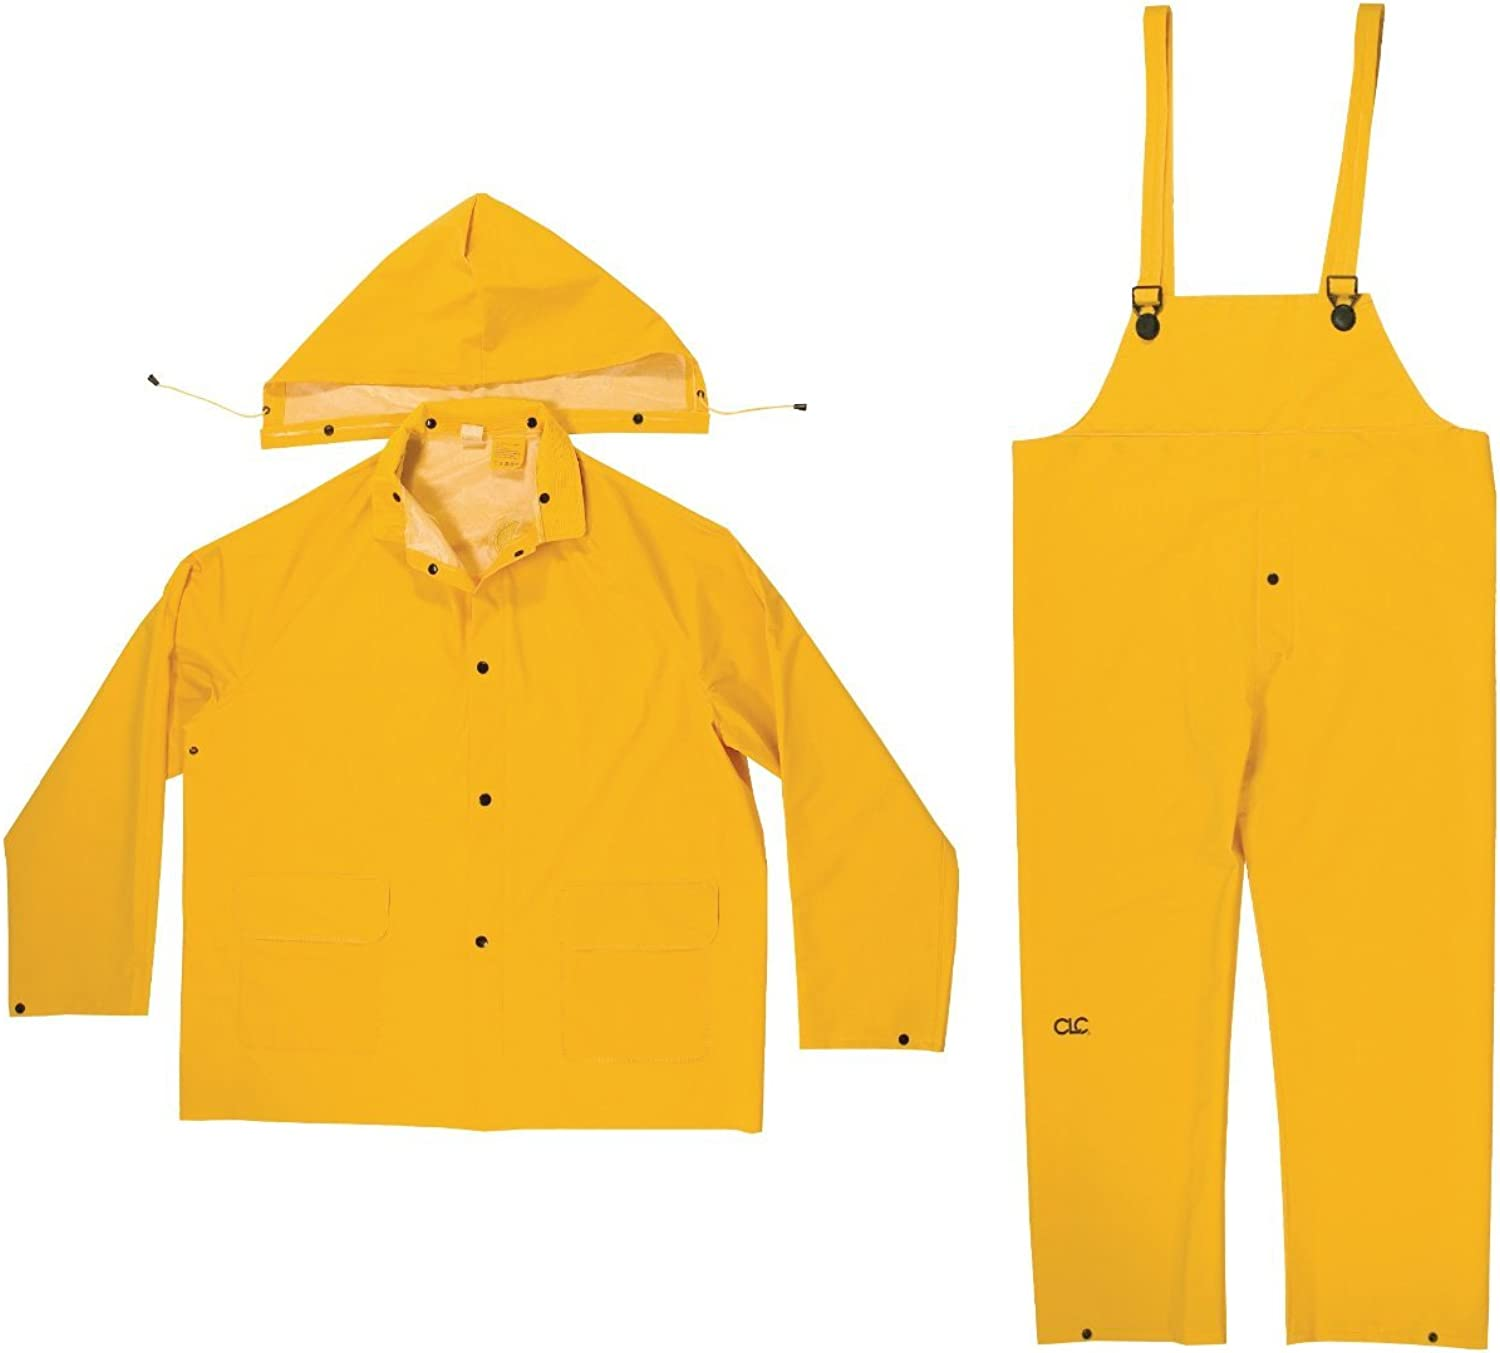 Boston Industrial 35 Mil Rain Suit  3 Pieces  in Your Choice of Sizes